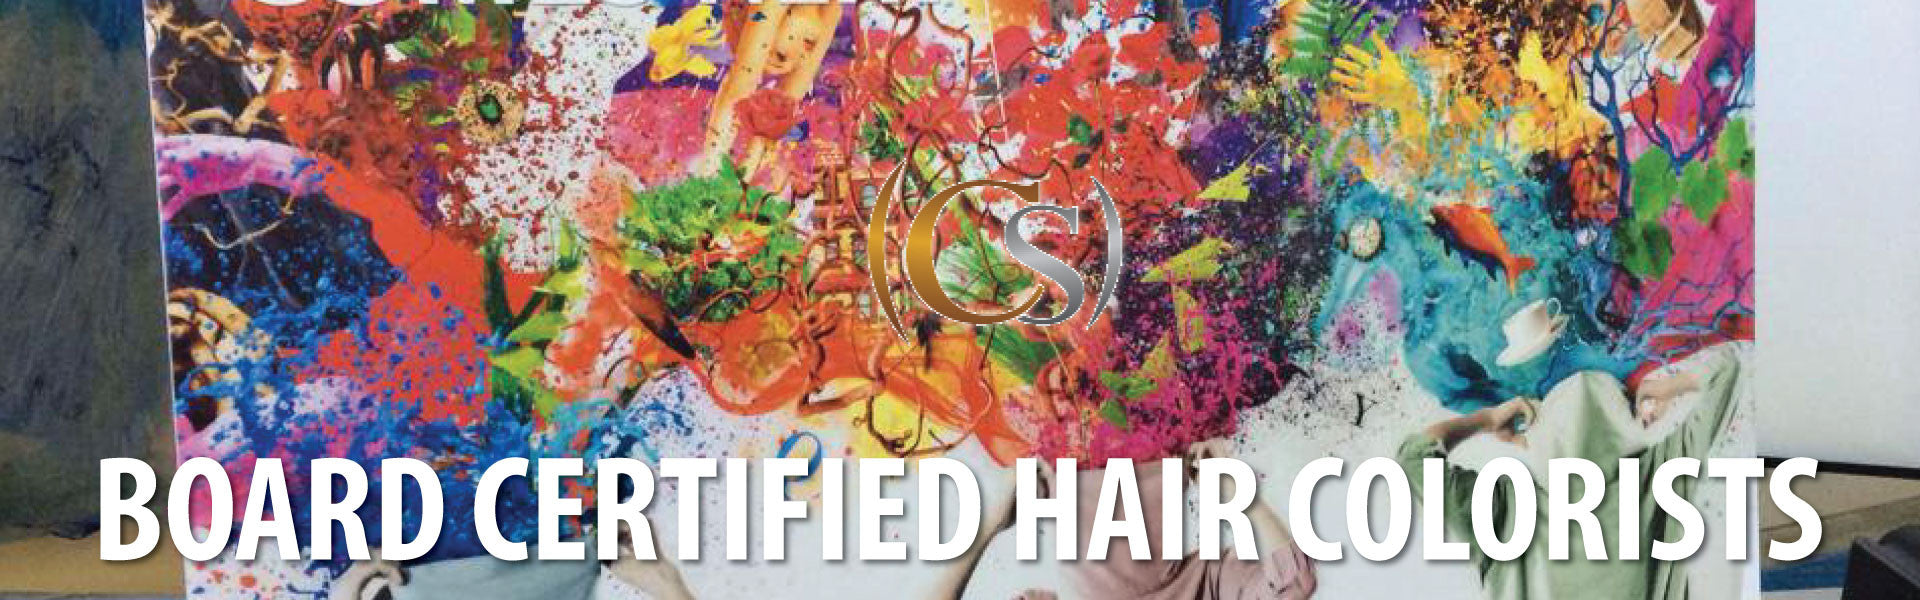 American Board Certified Hair Colorists West Palm Beach Hair Salon